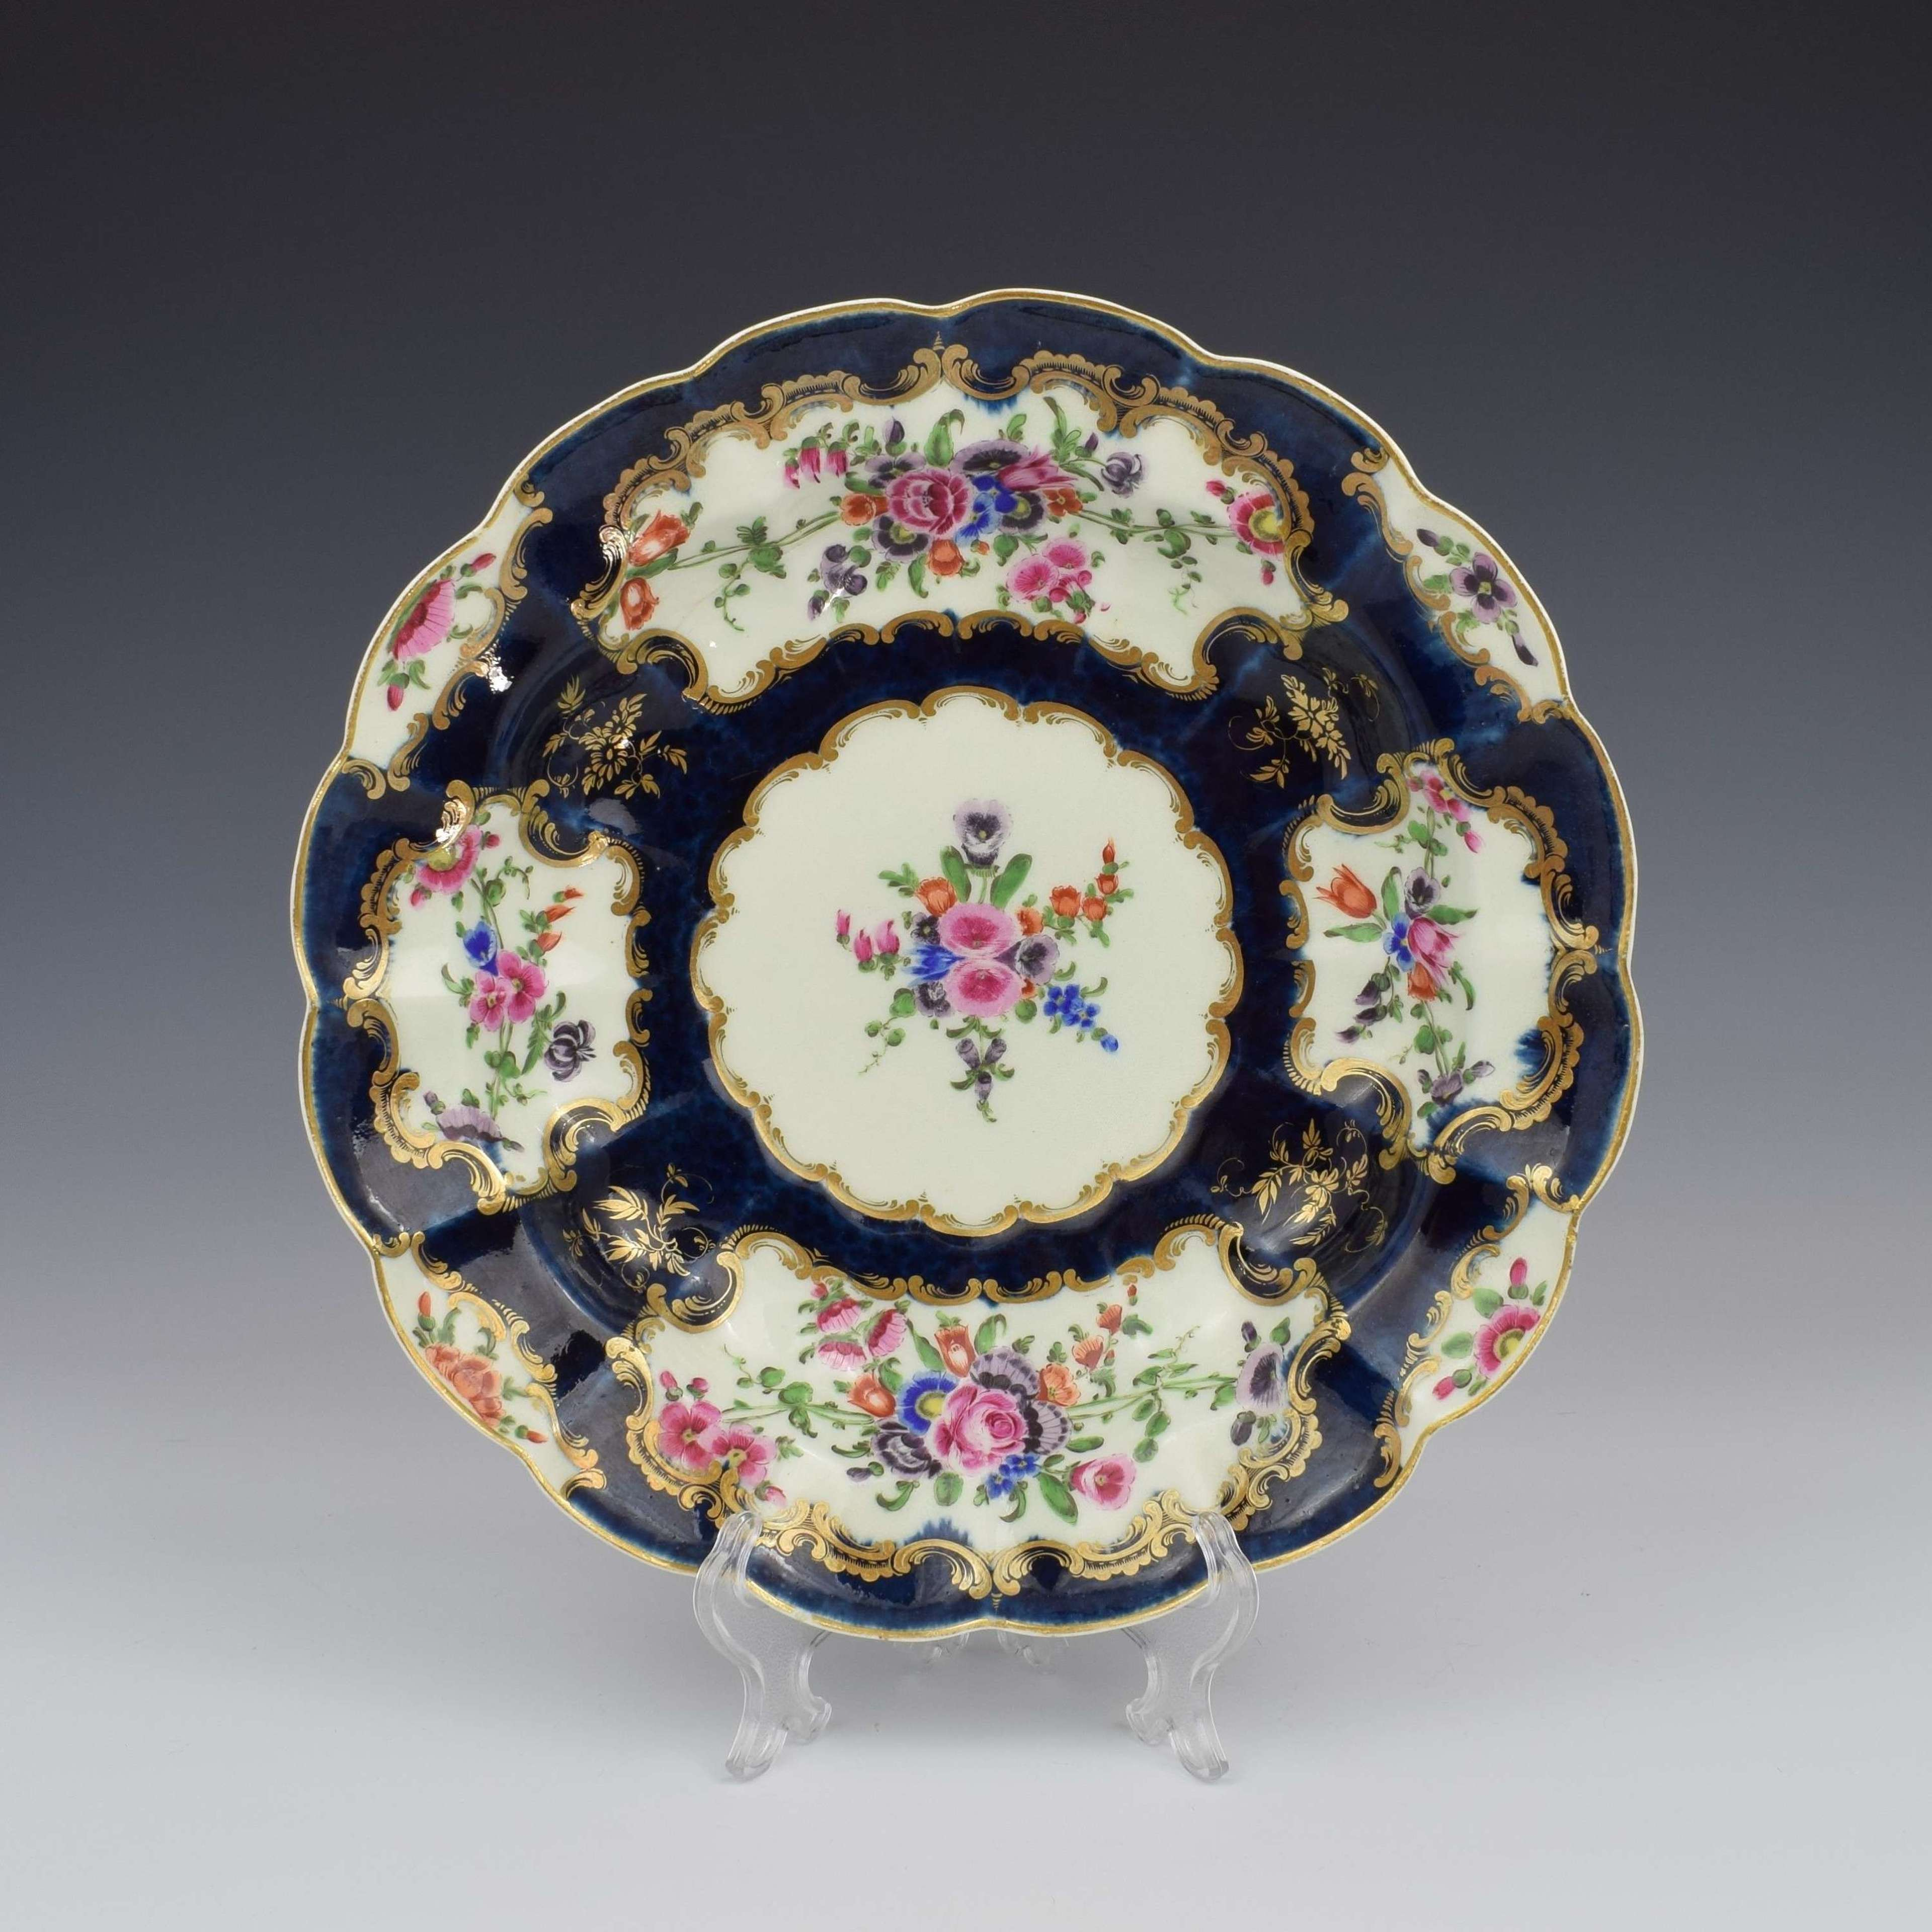 First Period Worcester Porcelain Blue Scale Junket Dish c.1770